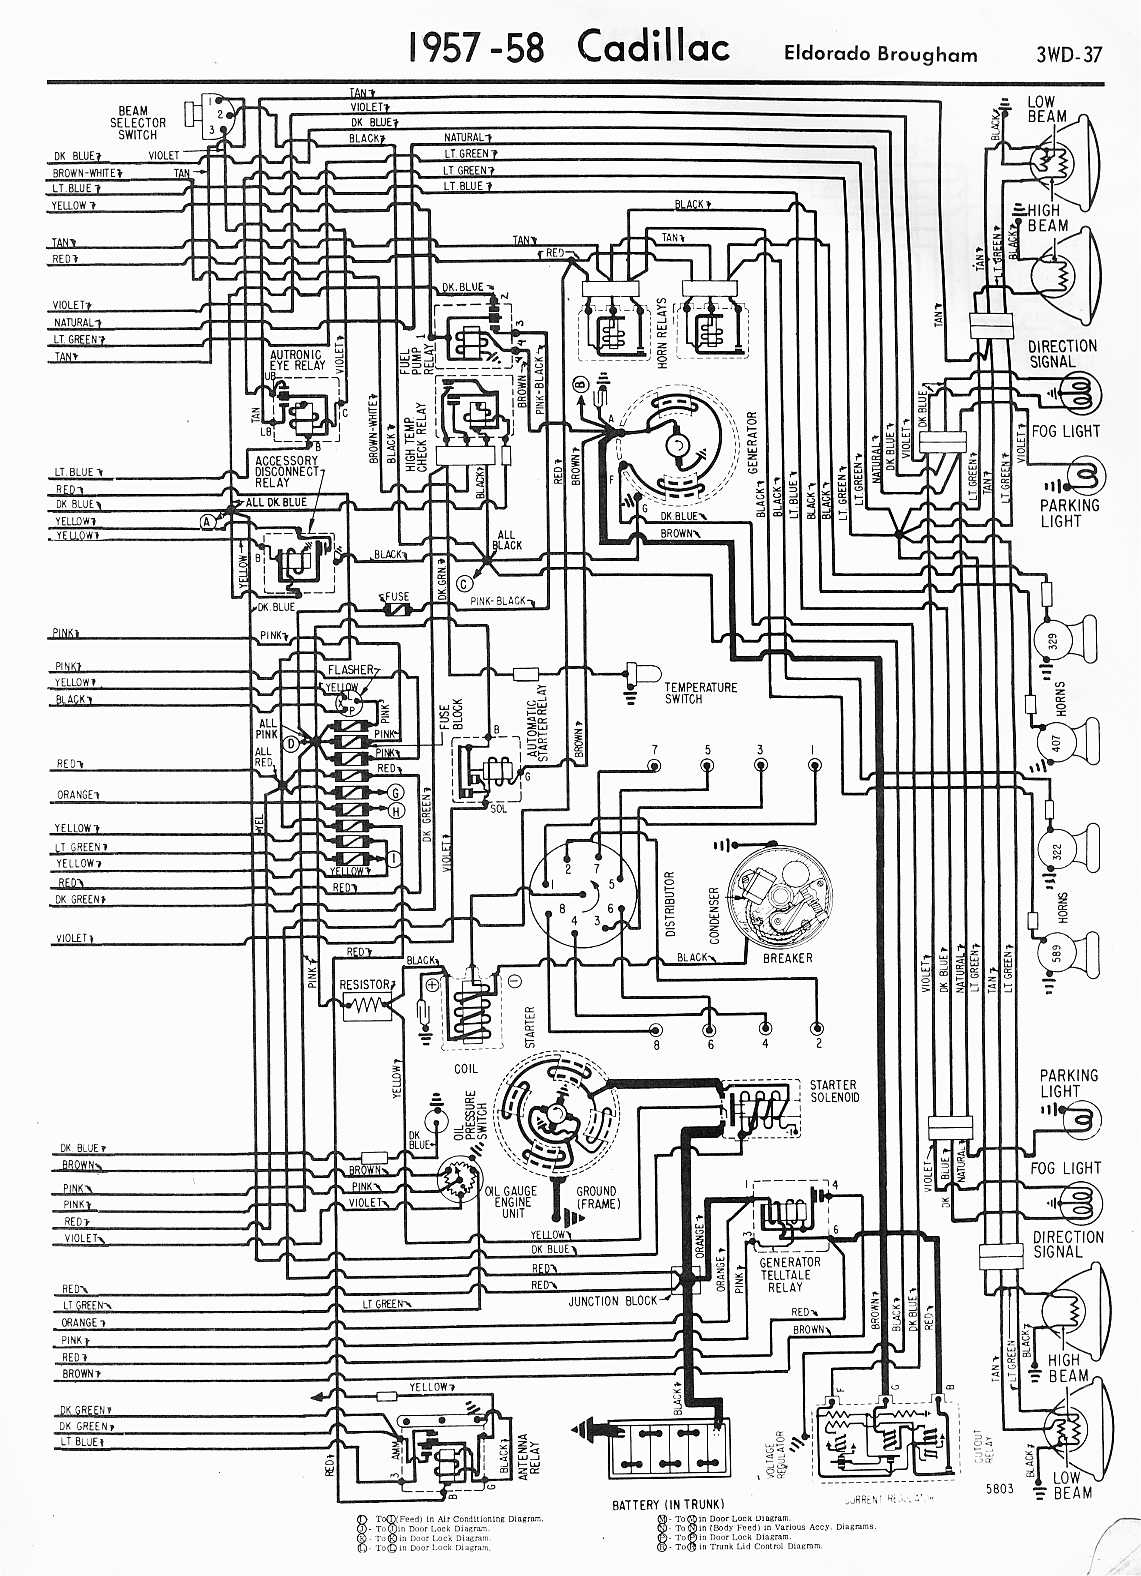 1957 Dodge Wiring Diagram Plymouth Engine Diagrams Dart Scosche 98 S10 Cadillac 1958 Eldorado Brougham